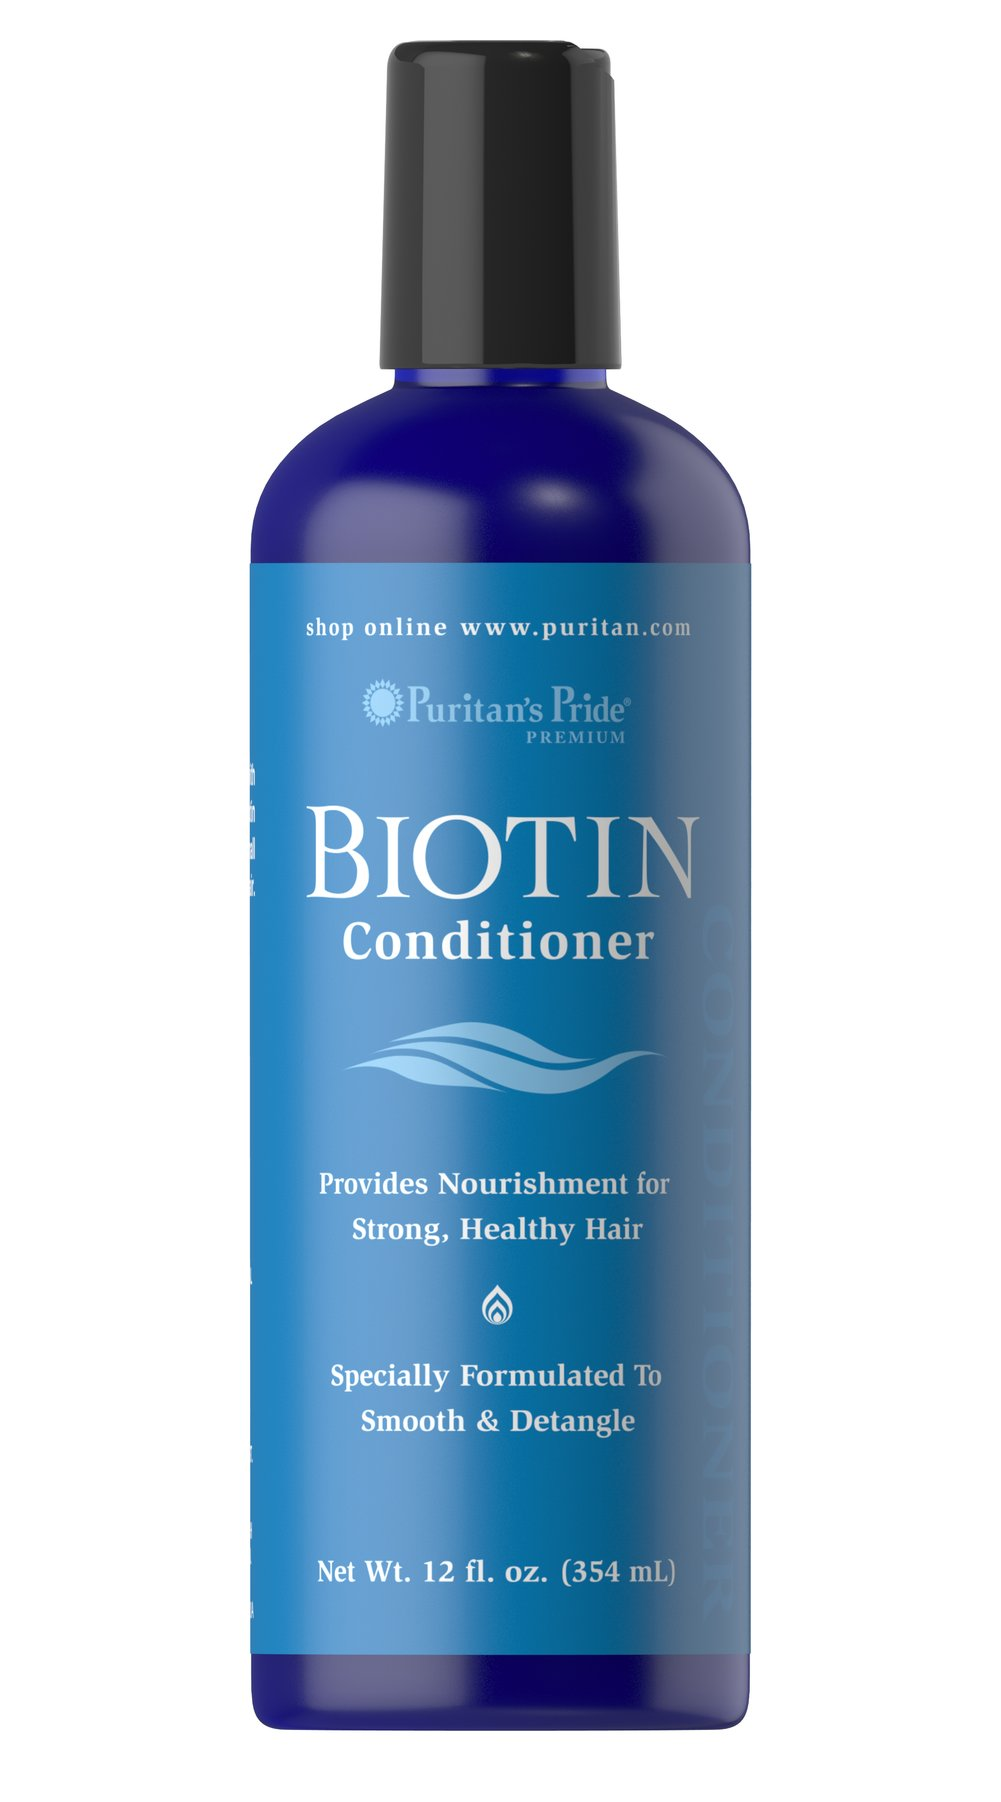 Biotin Condtioner With Puritan's Pride Biotin Conditioner, your hair will be silky smooth and tangle free!  Carefully formulated with Vitamin E and Panthenol our Biotin Conditioner will give your hair healthy body and luxurious shine.<br /> 12 oz Conditioner  $11.99